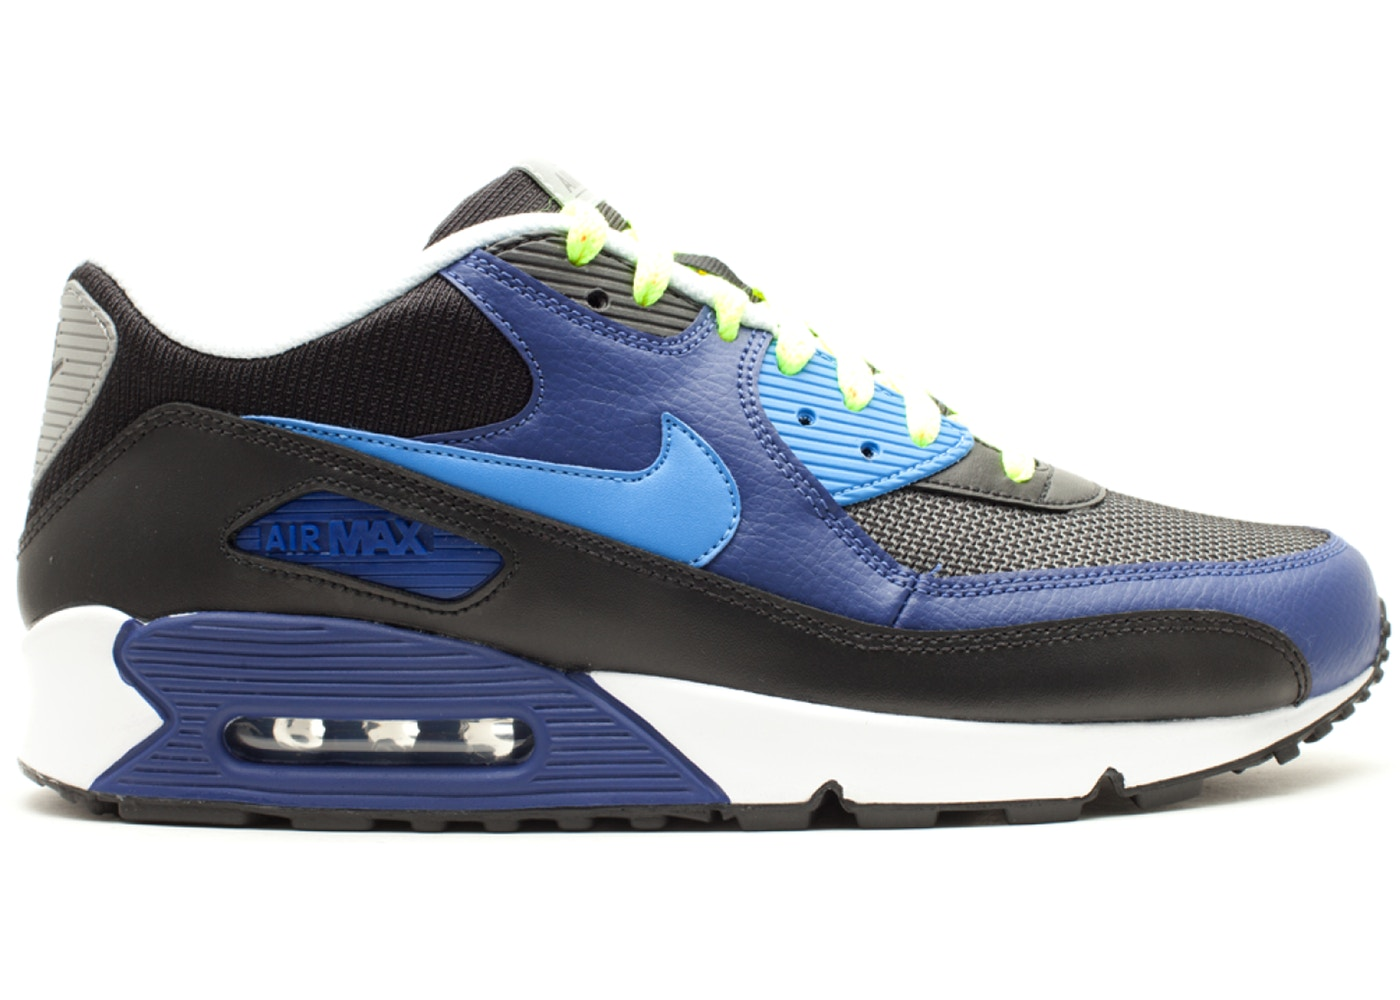 Nike Air Max 90 Blackvibrant Blue varsity Royal ACG 309299